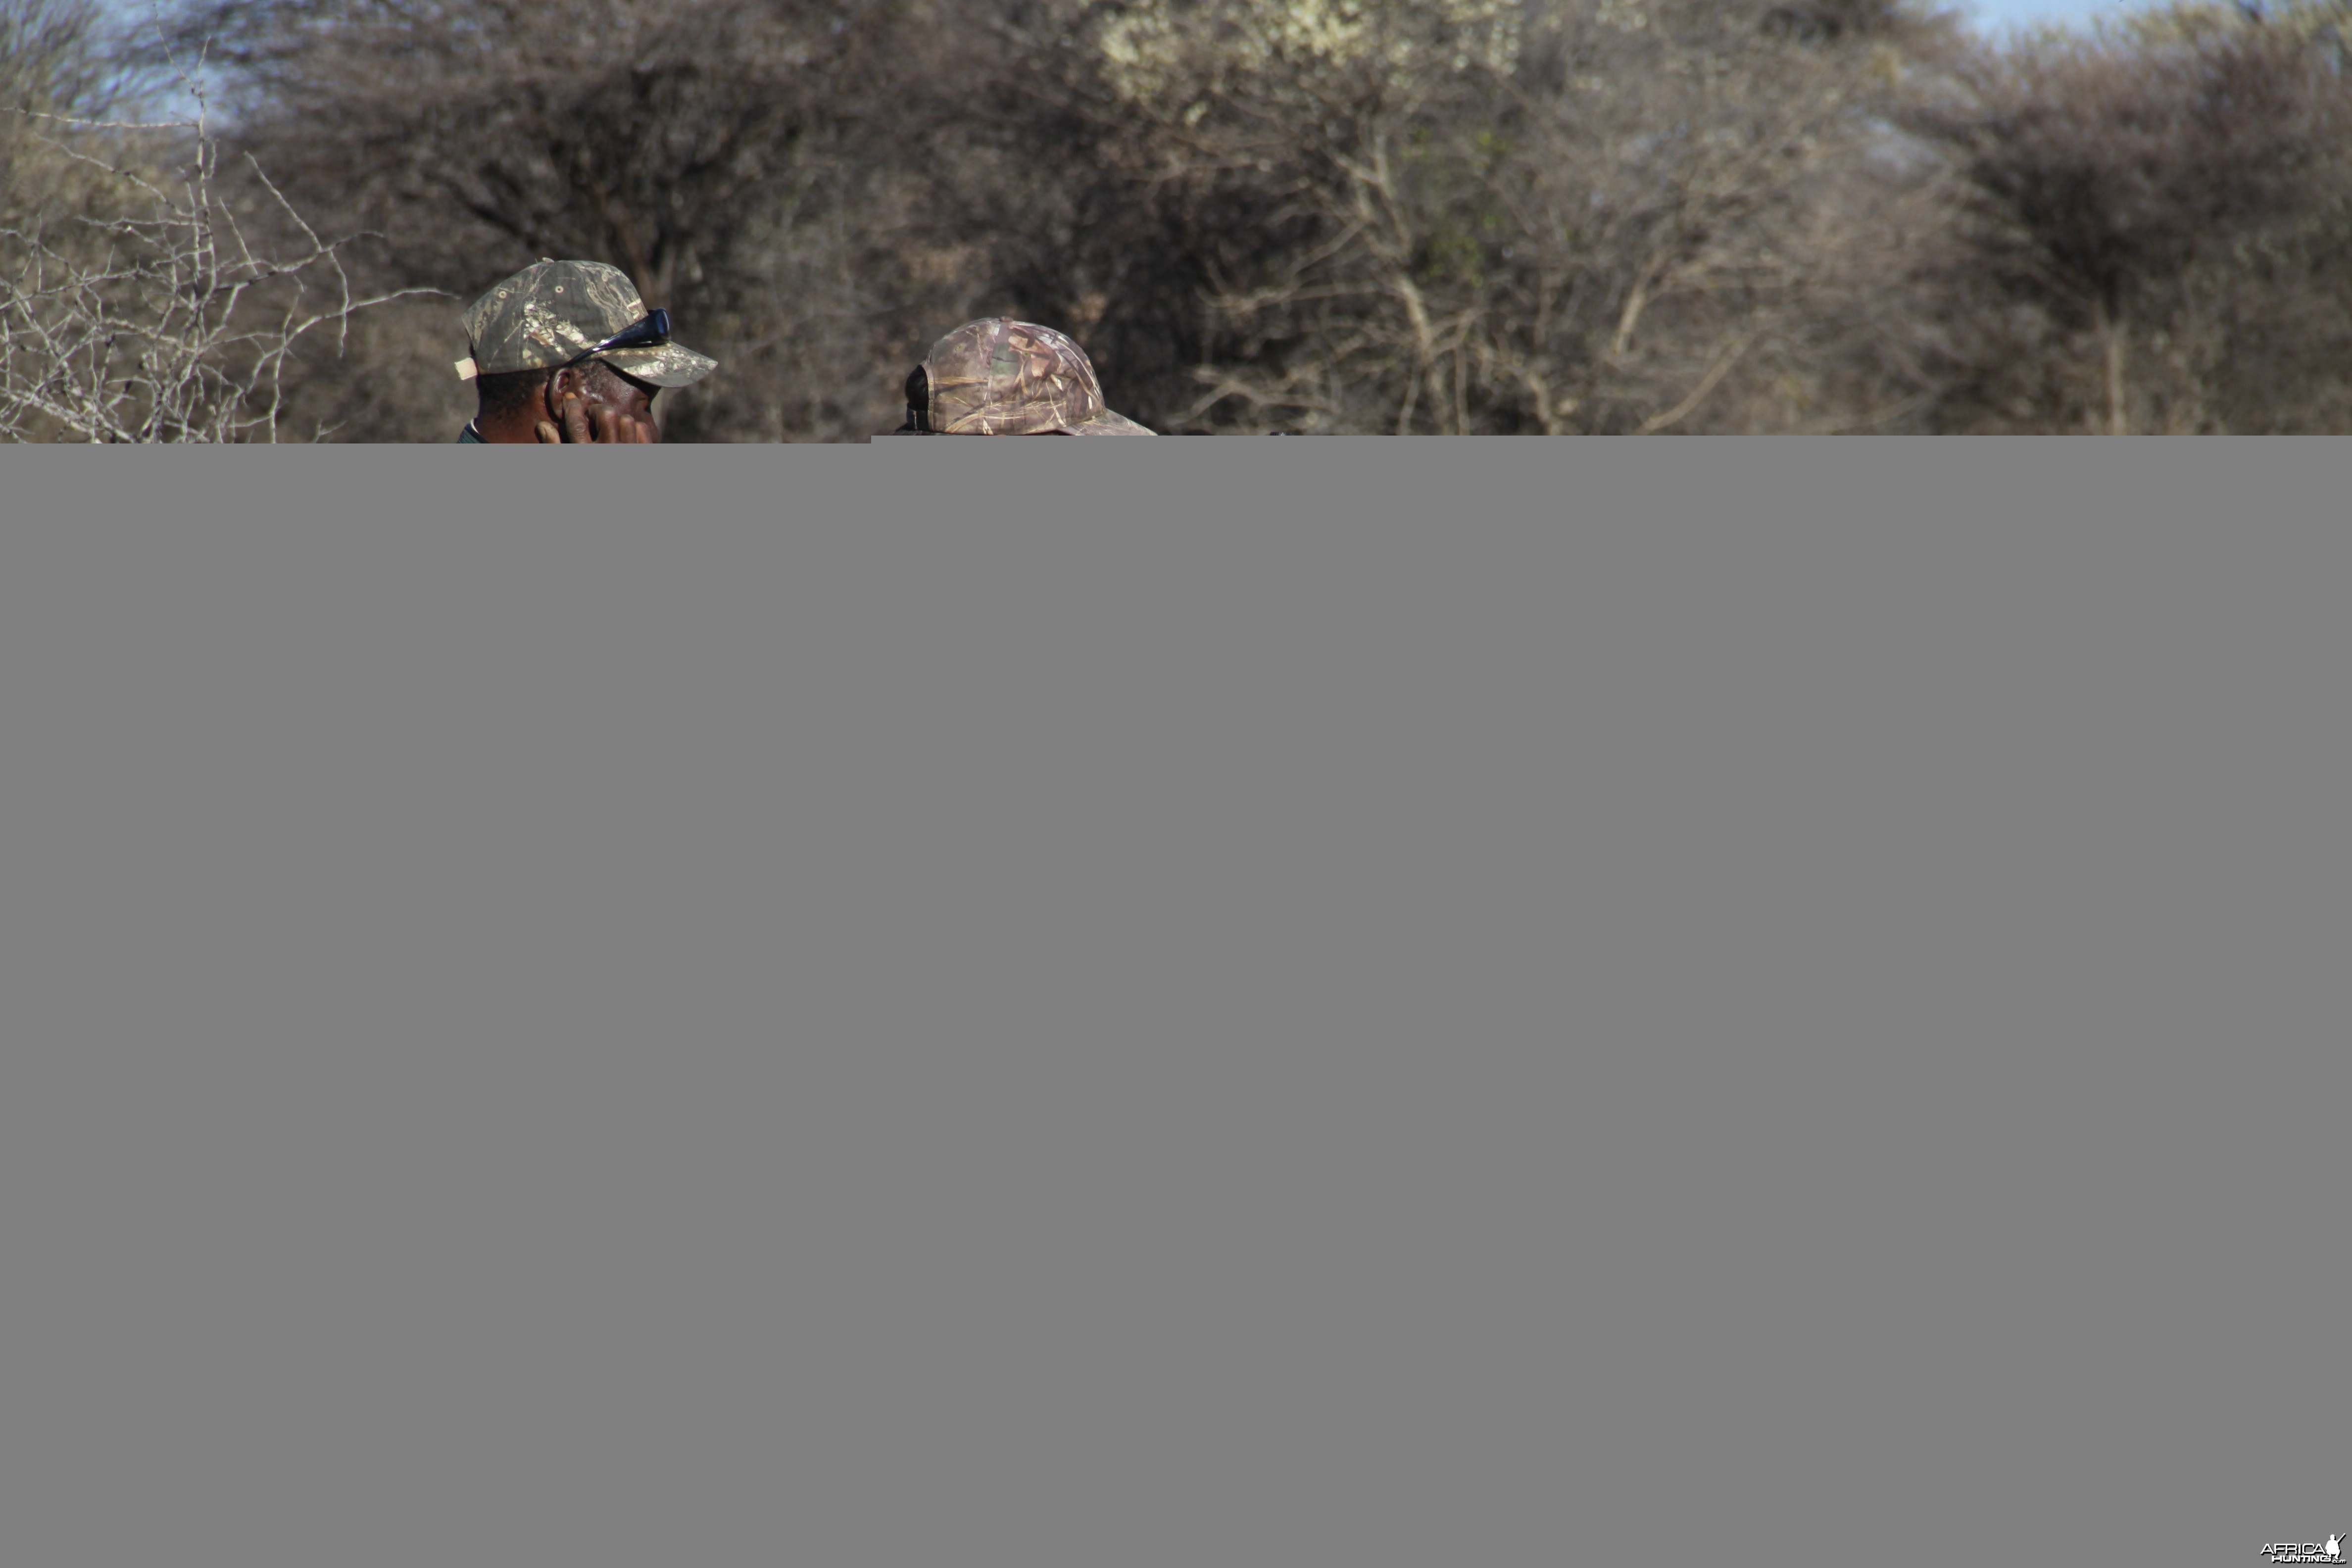 Ozondjahe Hunting Safaris in Namibia